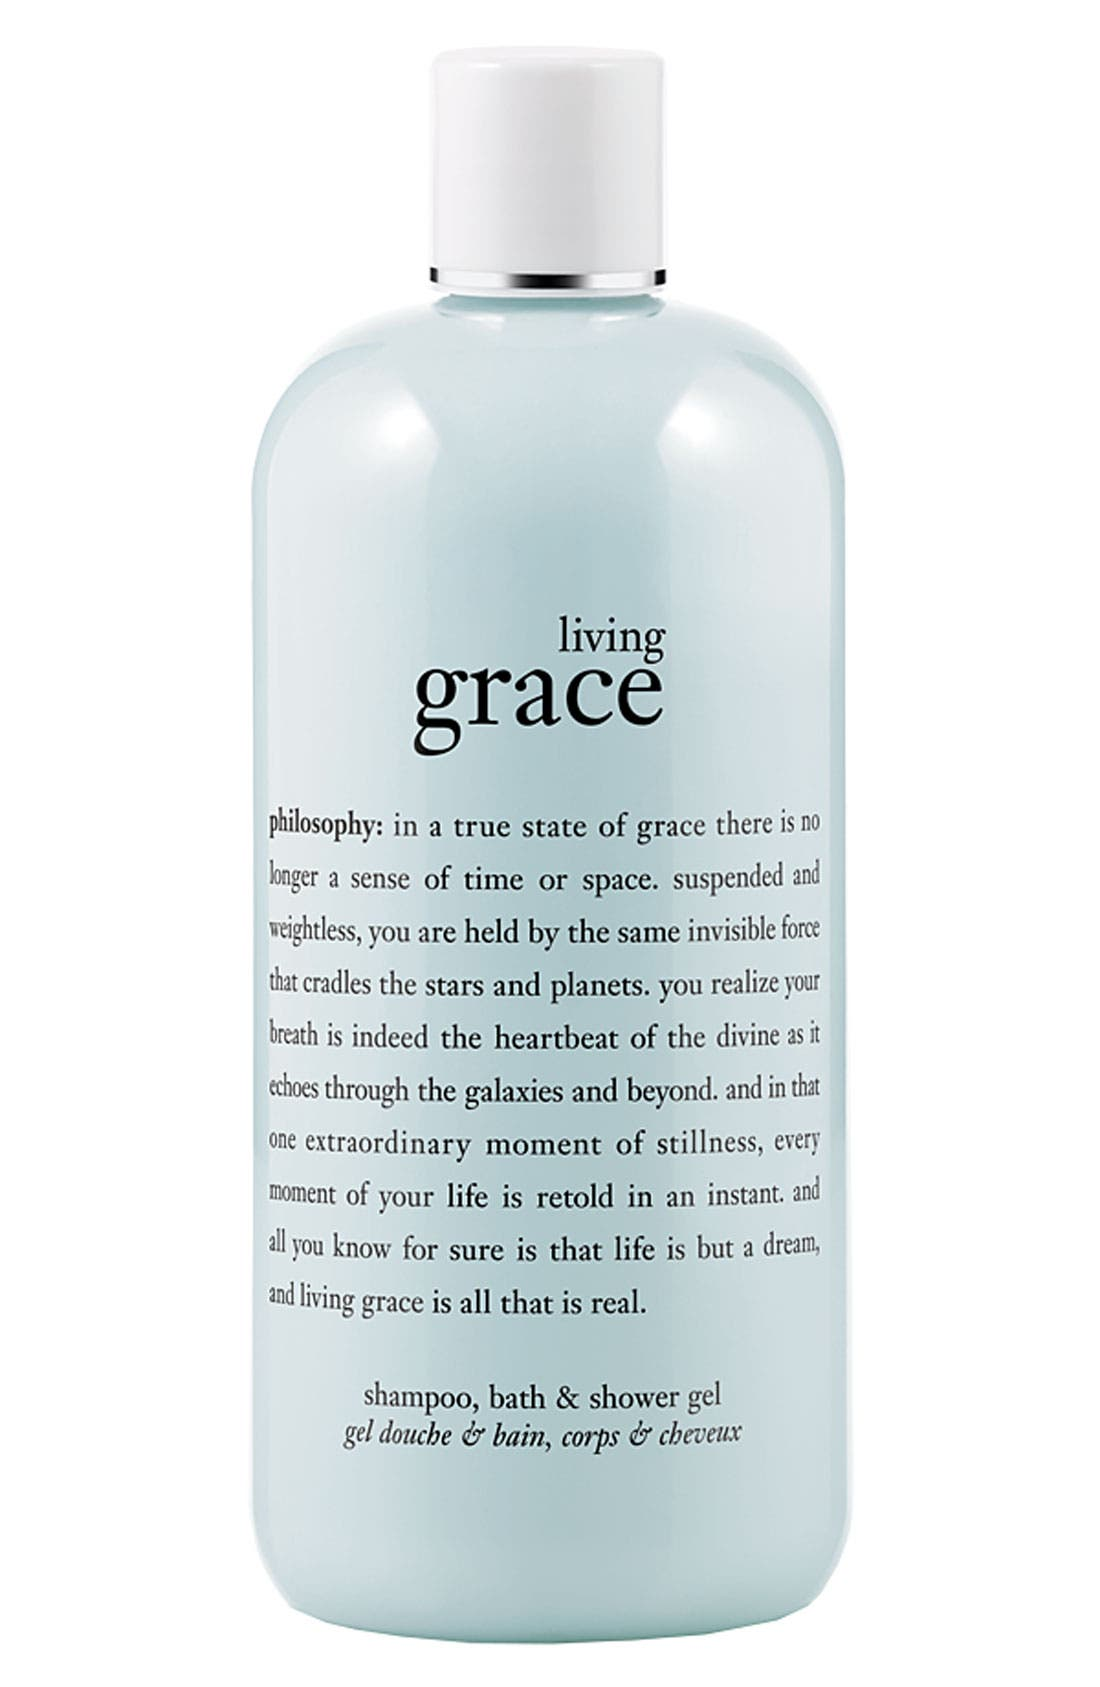 philosophy 'living grace' shampoo, bath & shower gel